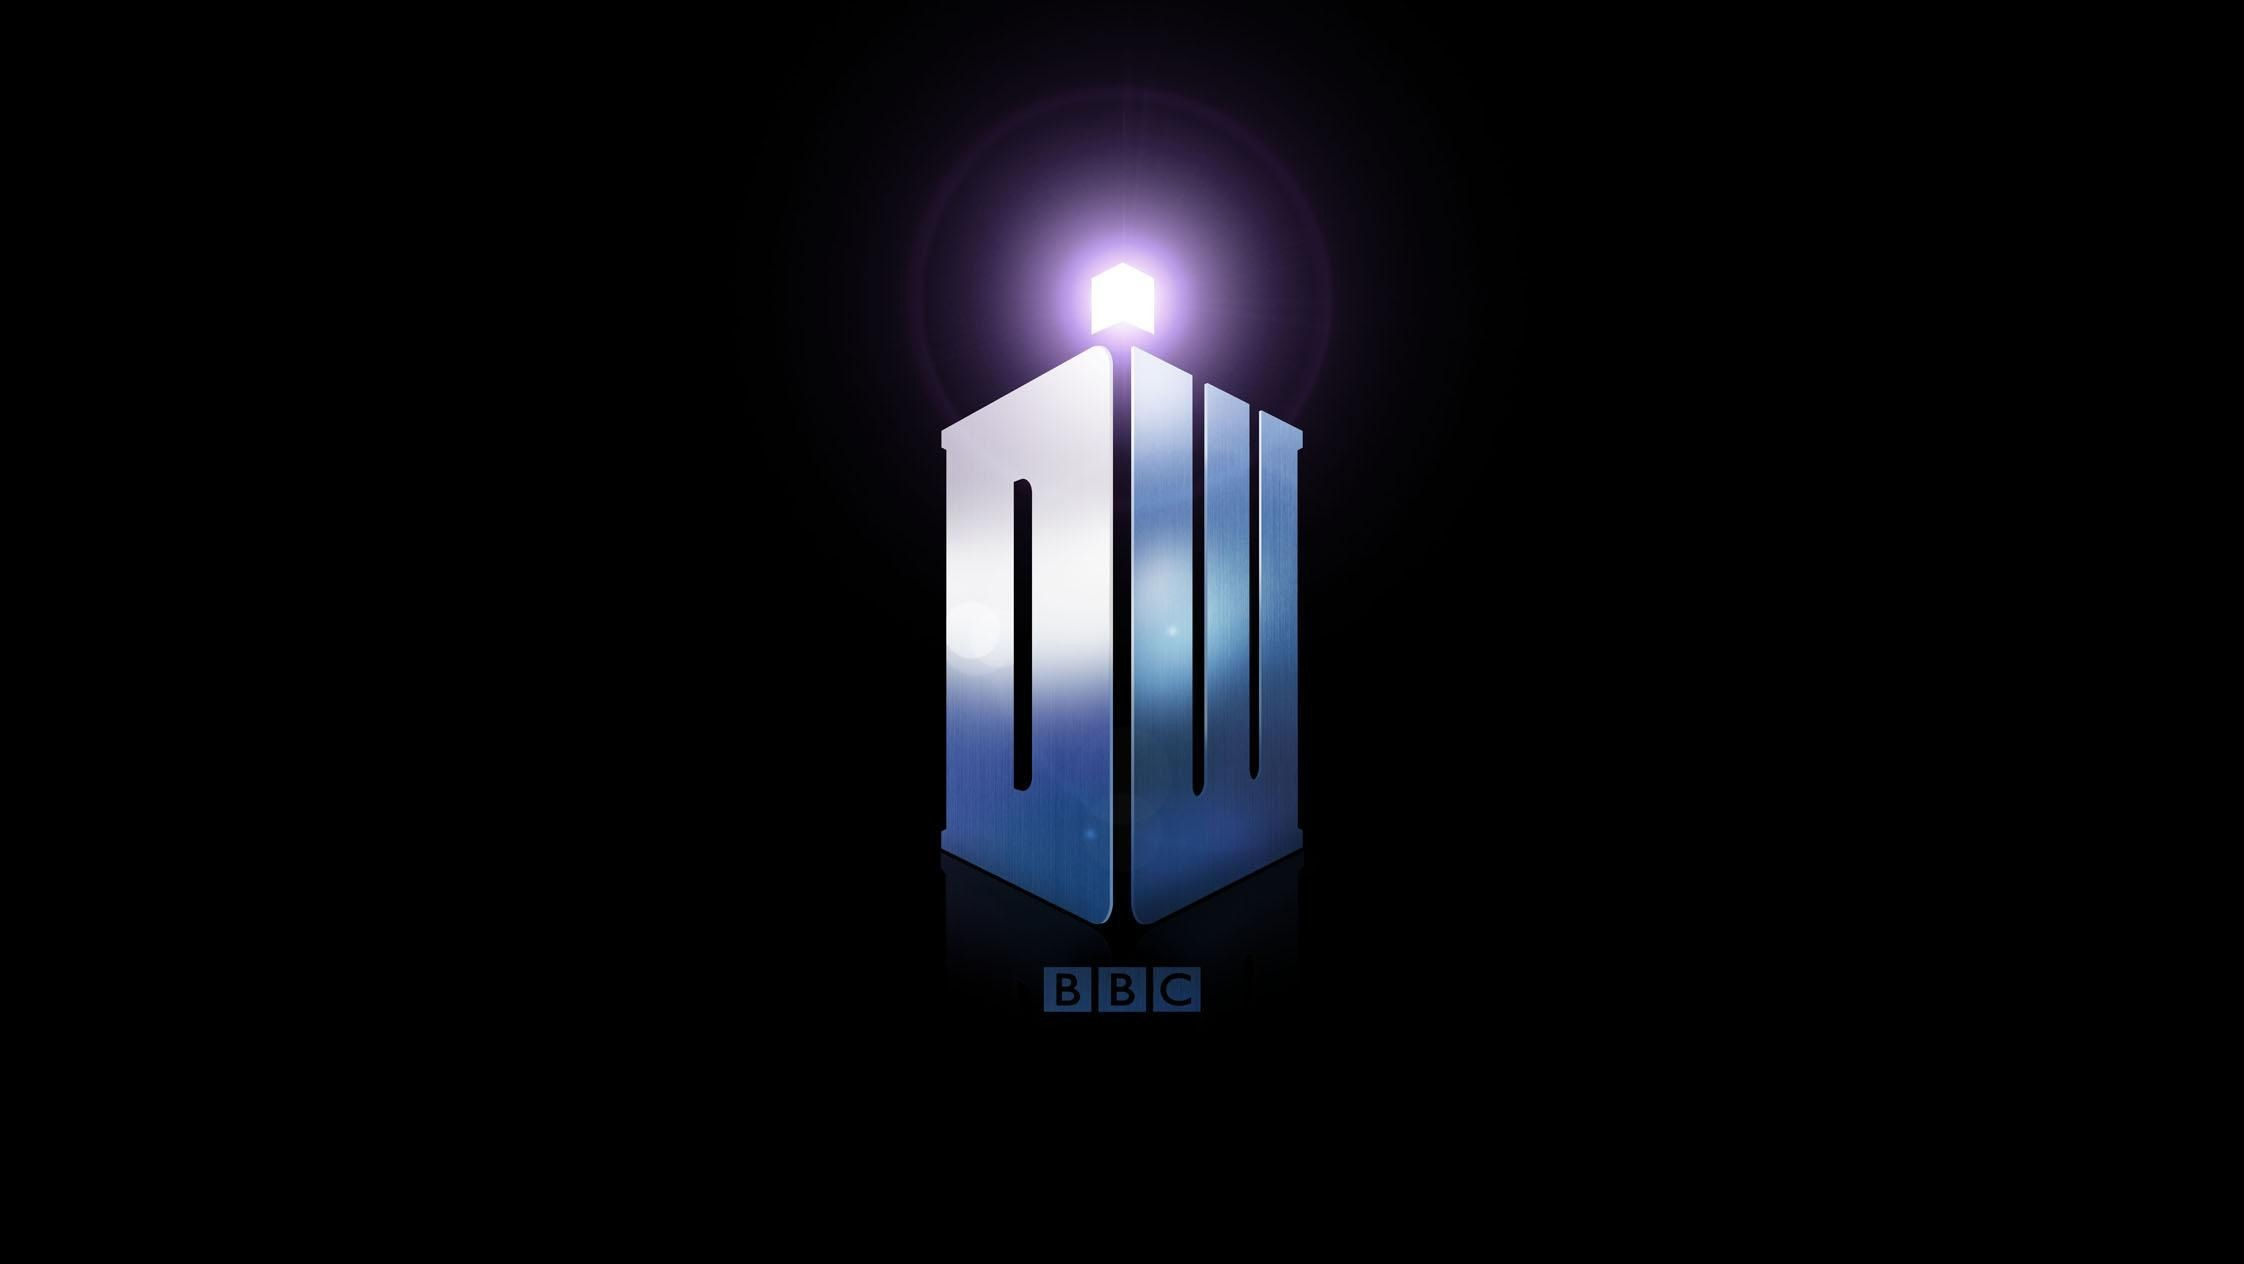 Doctor who iphone wallpapers tardis